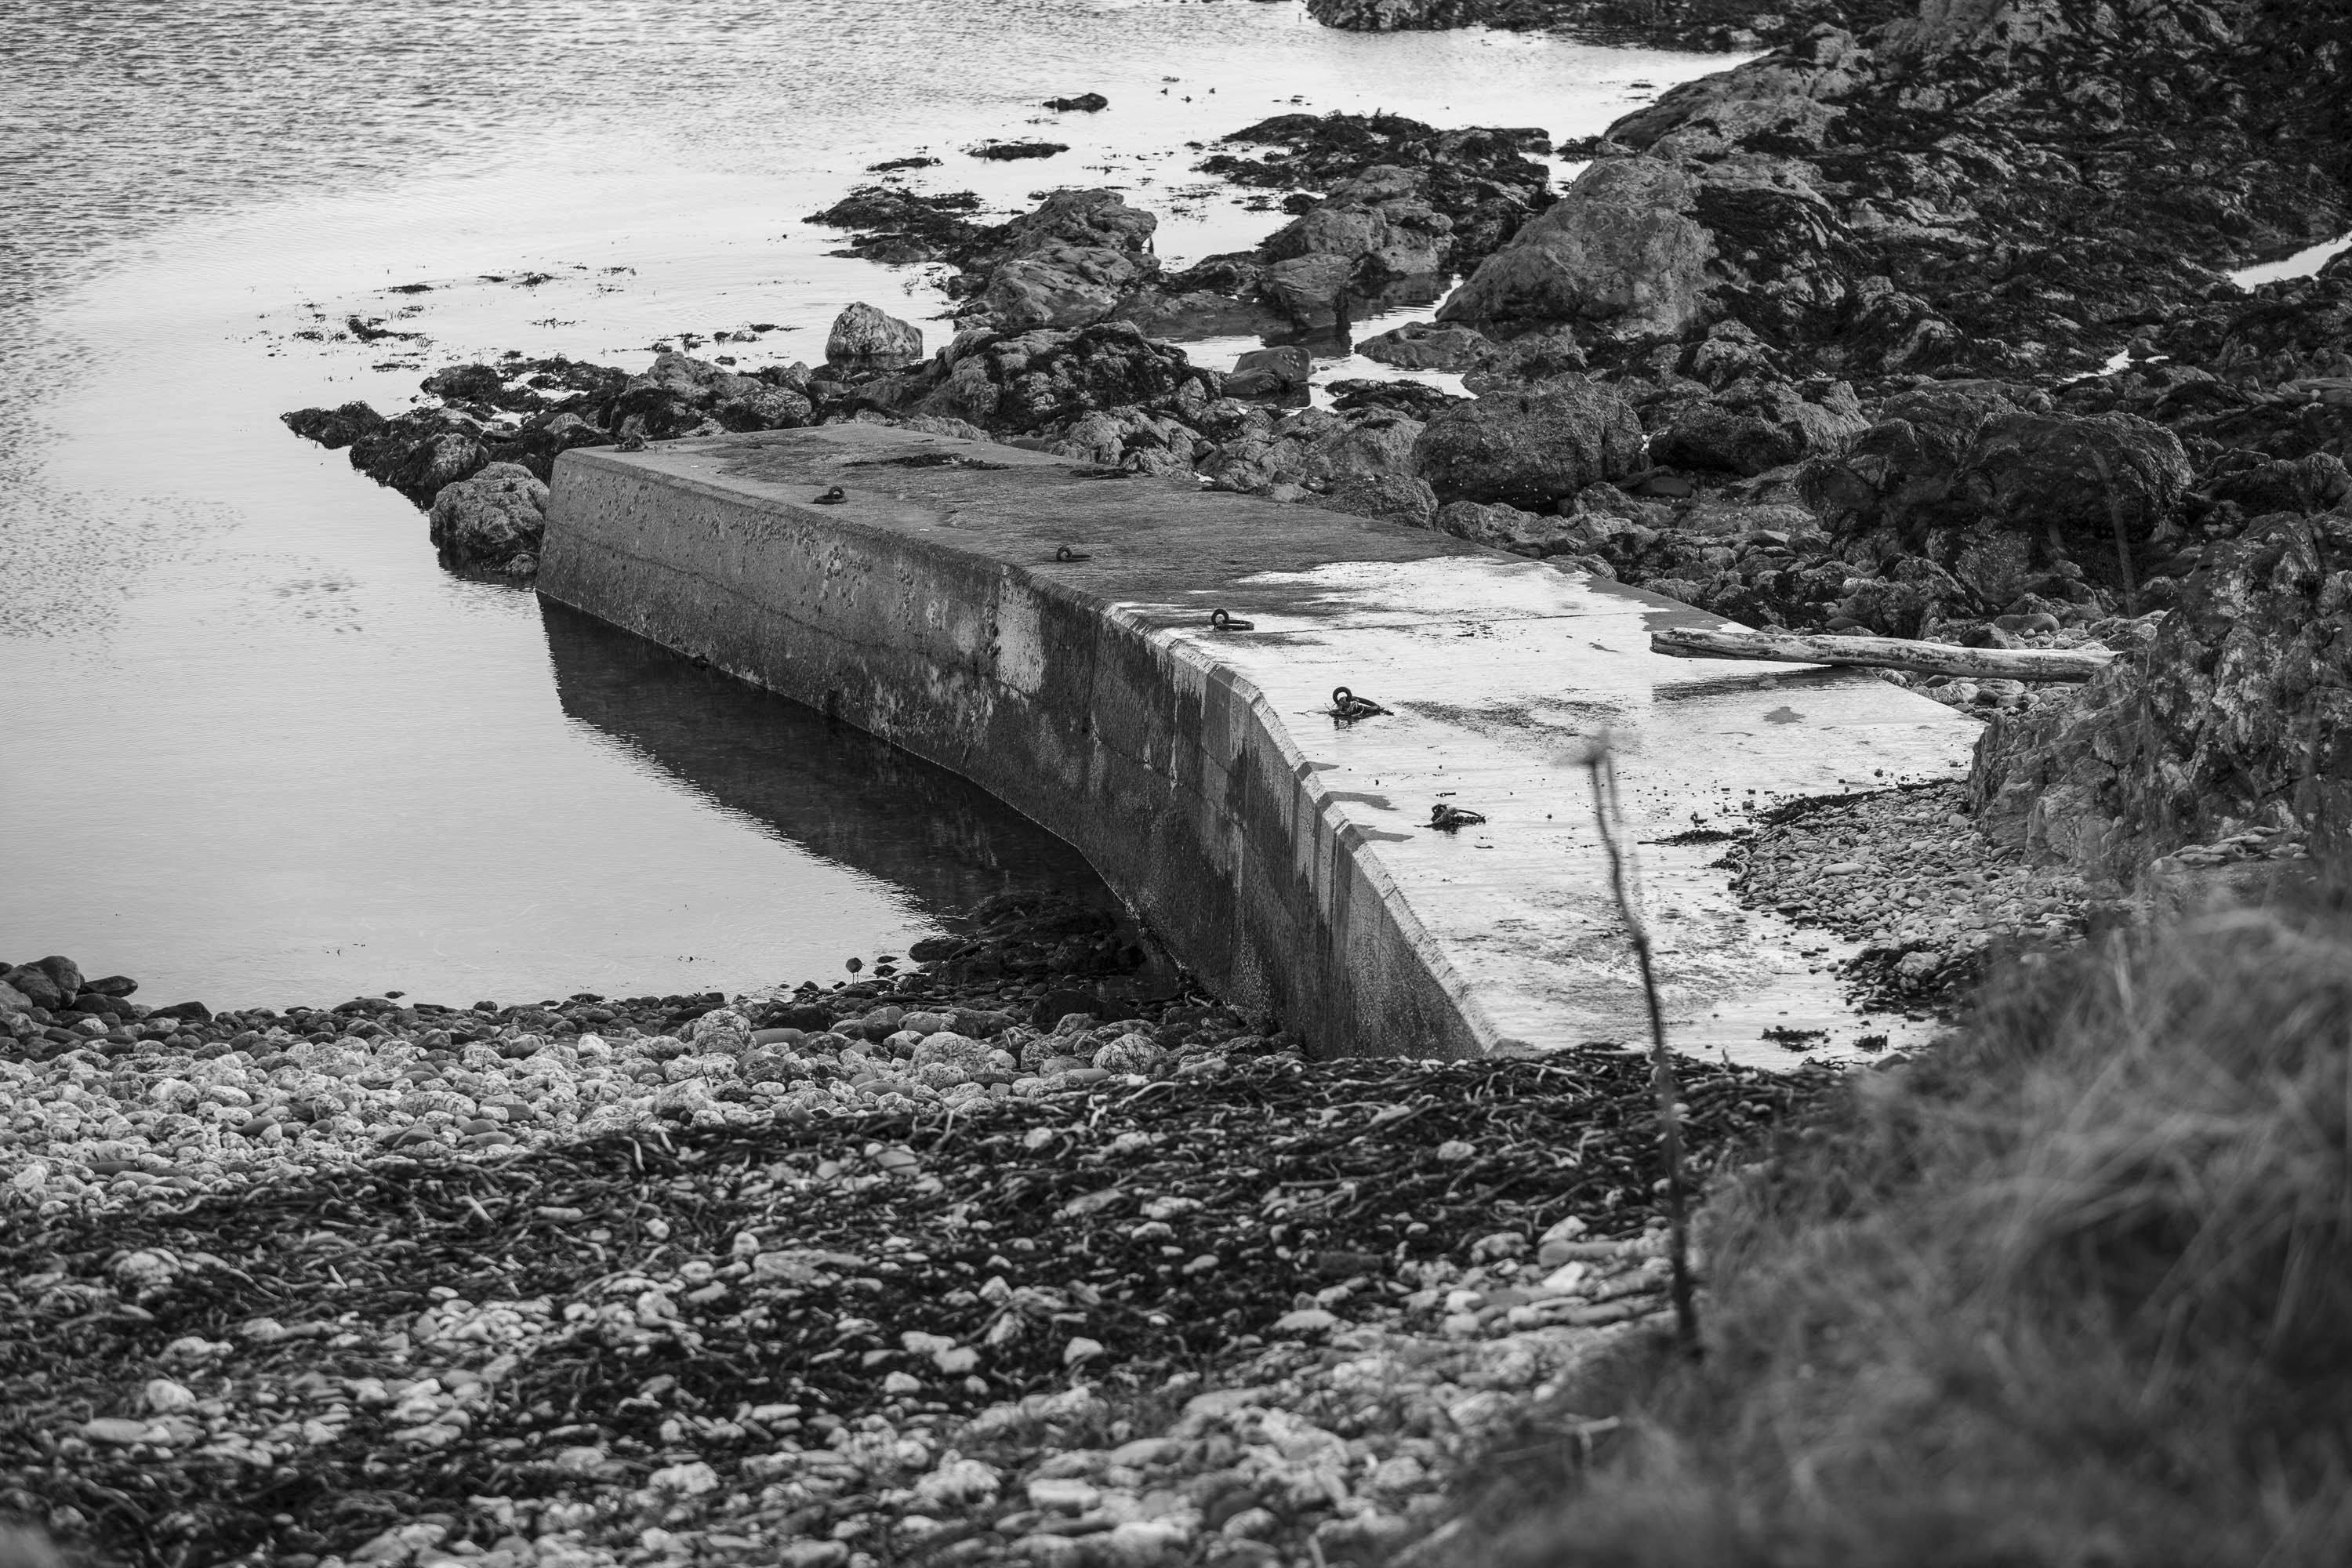 View onto the shore at Hoswick, Shetland. The small pier cuts into the sea and lines of seaweed are shown washed up on the stones. Behind the pier, the shore becomes rocky.